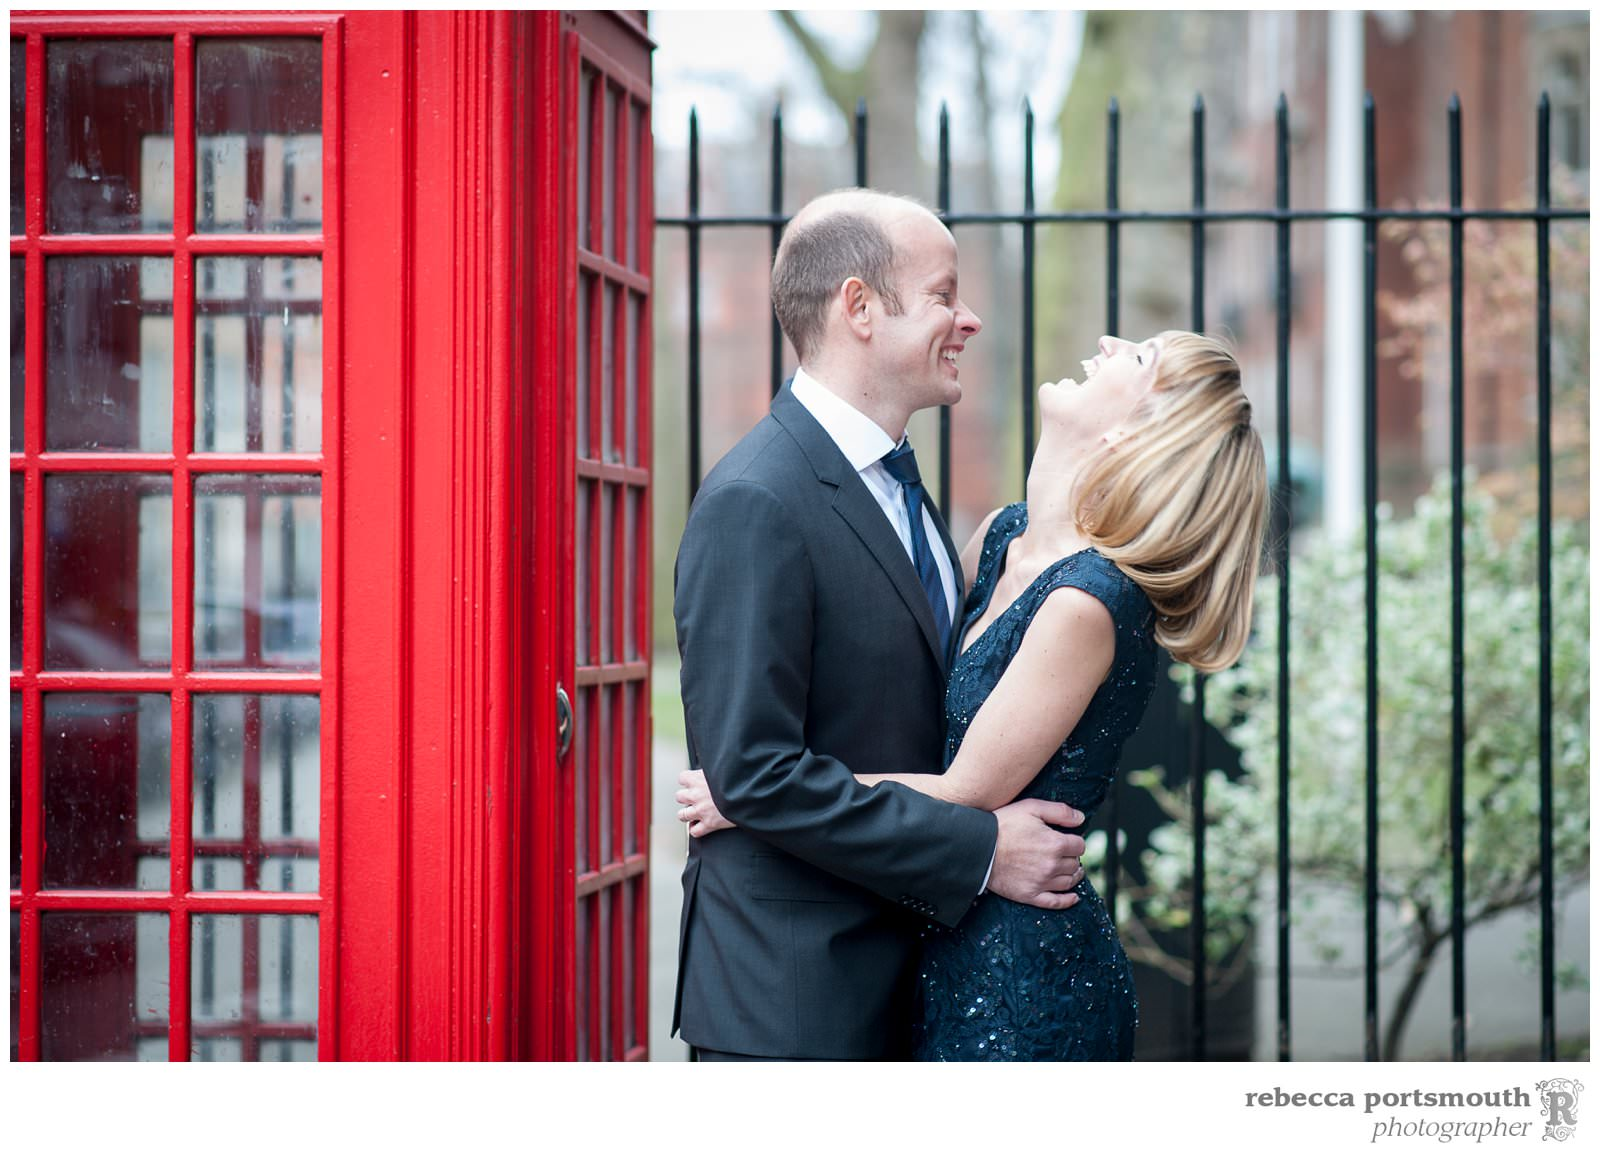 Emma and Chris have portraits at Mount Street Gardens before their London vow renewal at Westminster's Mayfair Library.